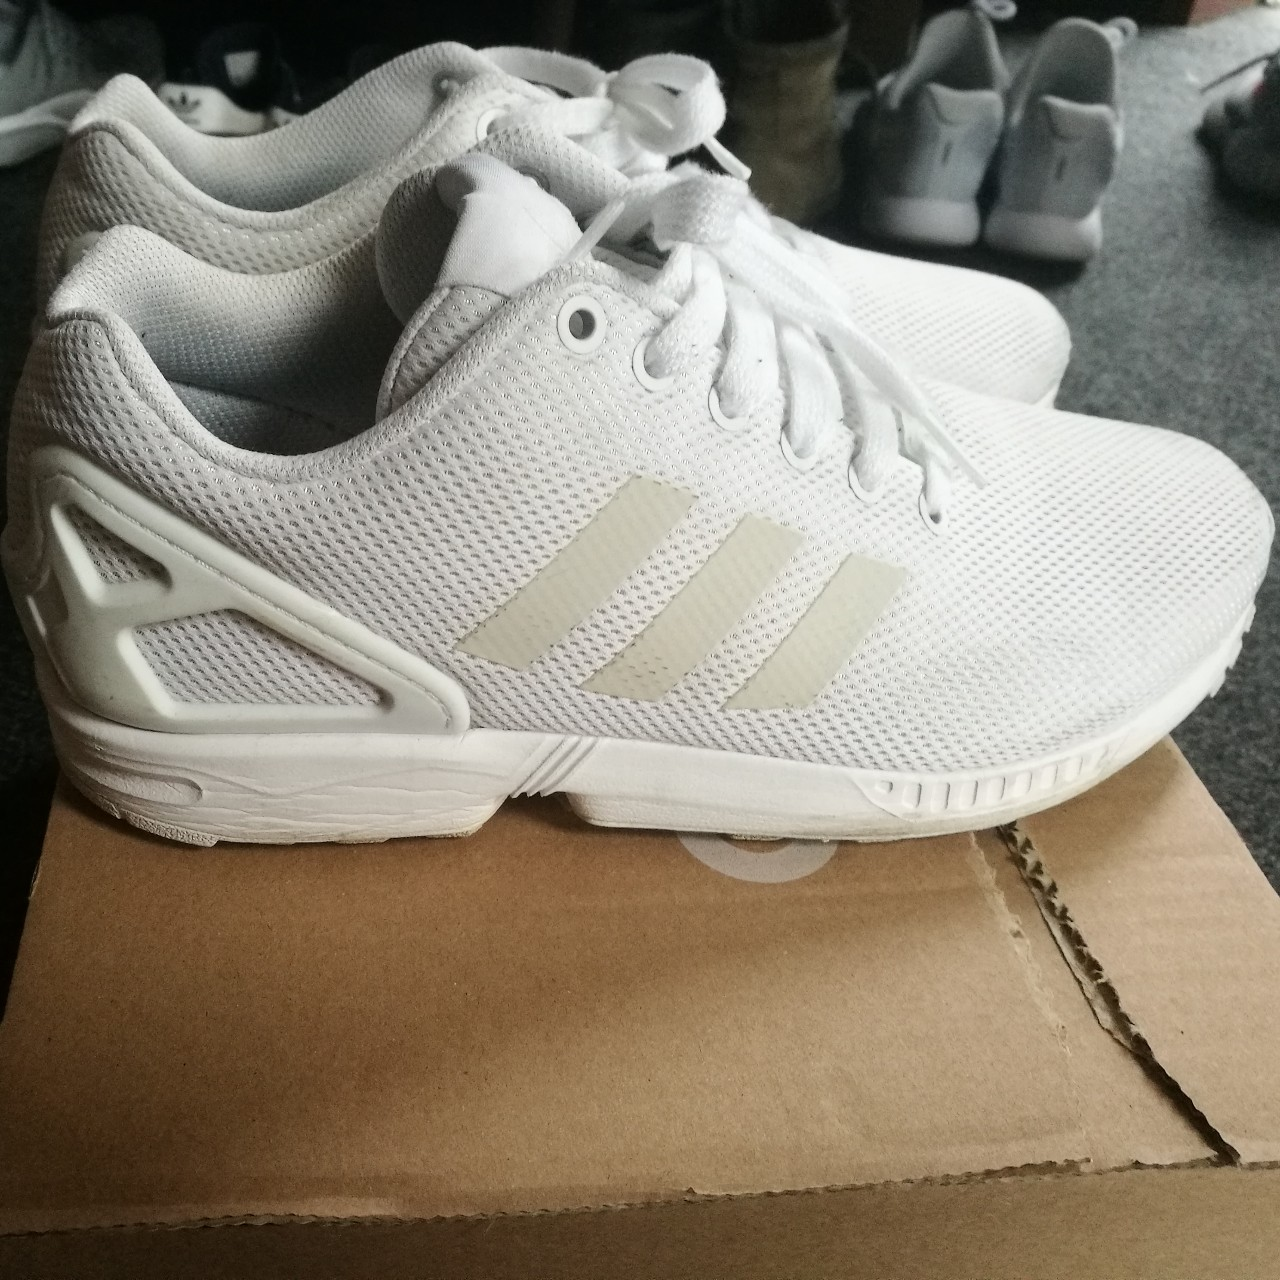 low priced 769e9 49294 Adidas Zx Flux Triple White. Size UK8 Used, I would... - Depop